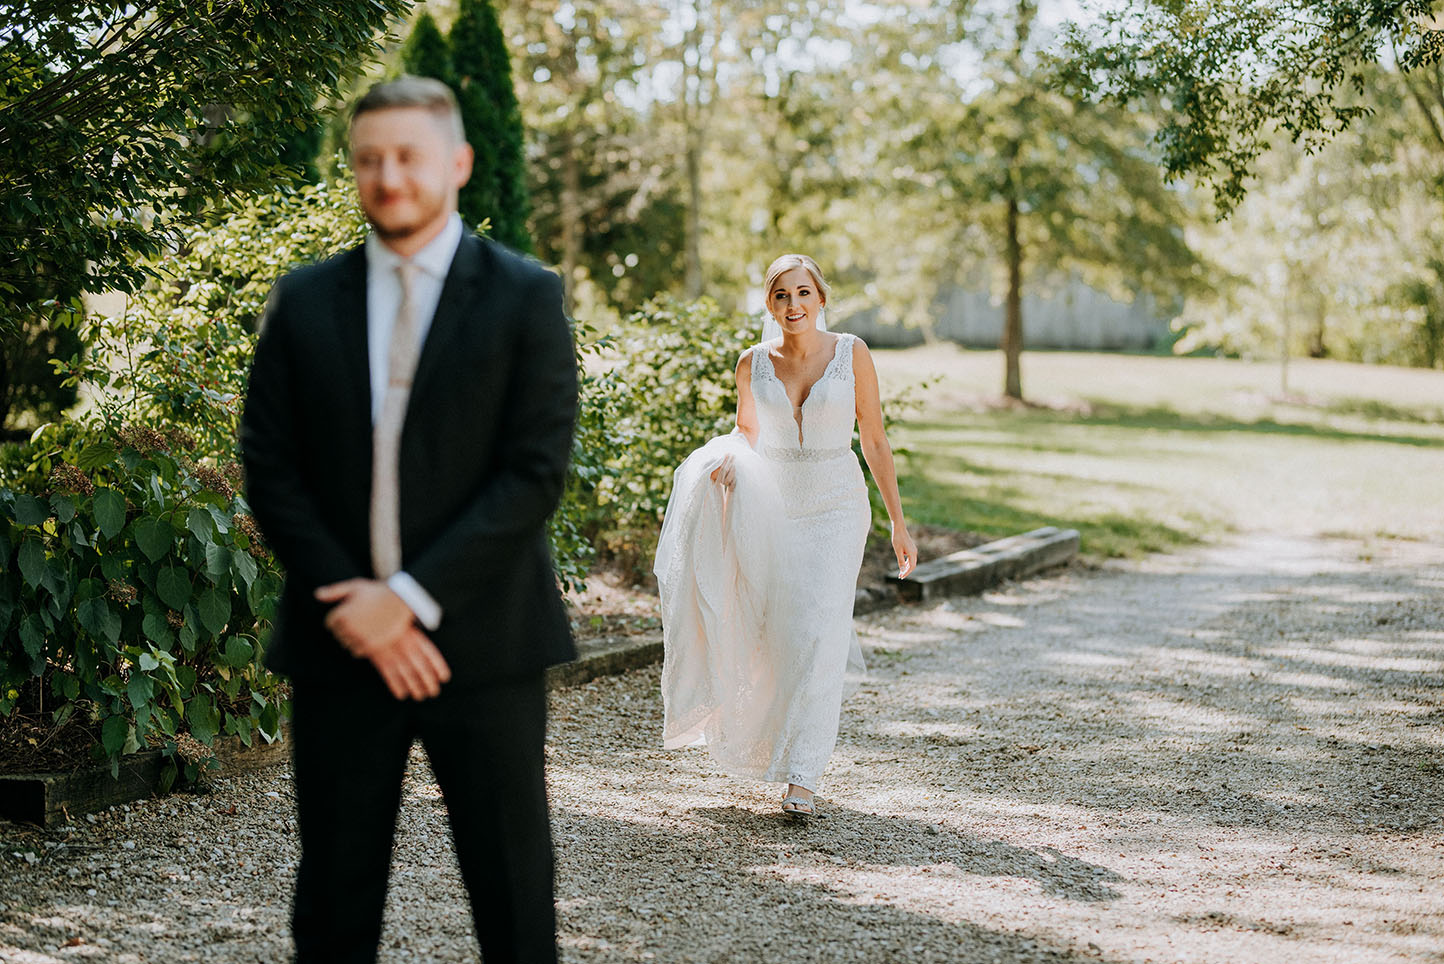 Alyssa and Barrett's First Look